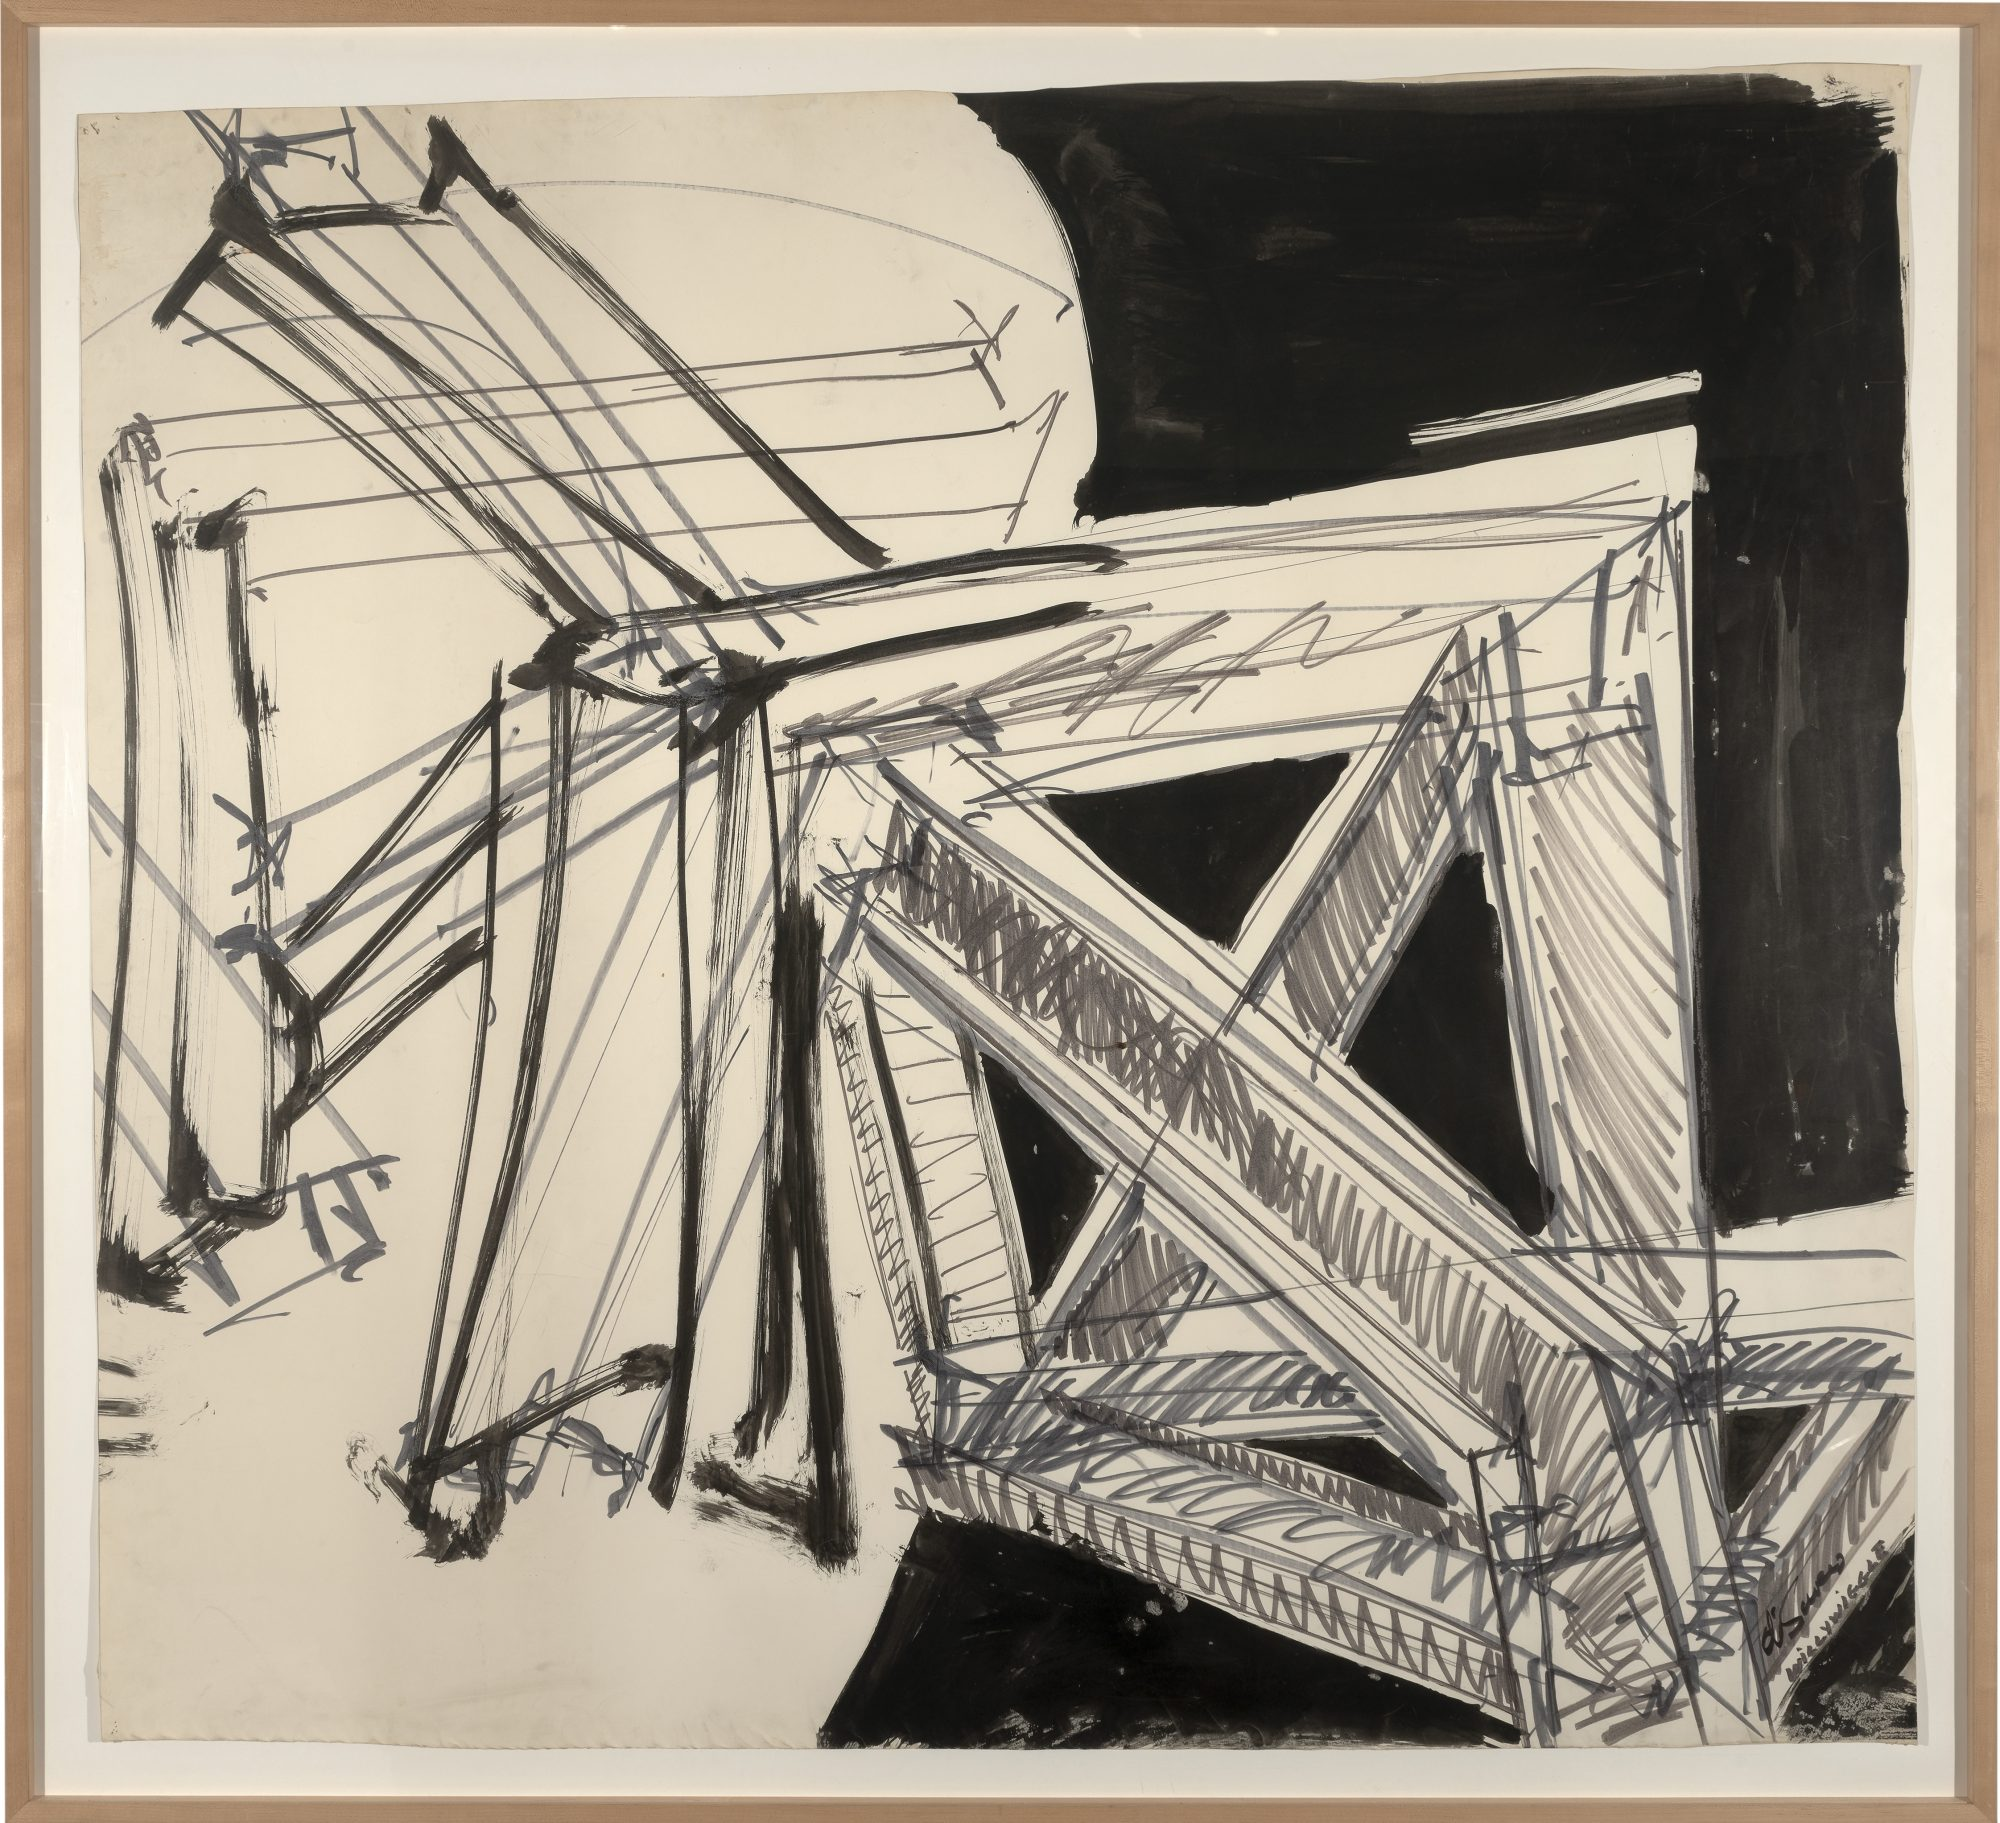 Mark Di Suvero (American, b. 1933) Willy Wiggle (Eindhoven), 1971. Black wash on paper. 57 3/8 x 53 3/8 in. Gift of Susan W. and Stephen D. Paine, Class of 1954, 94.25.1